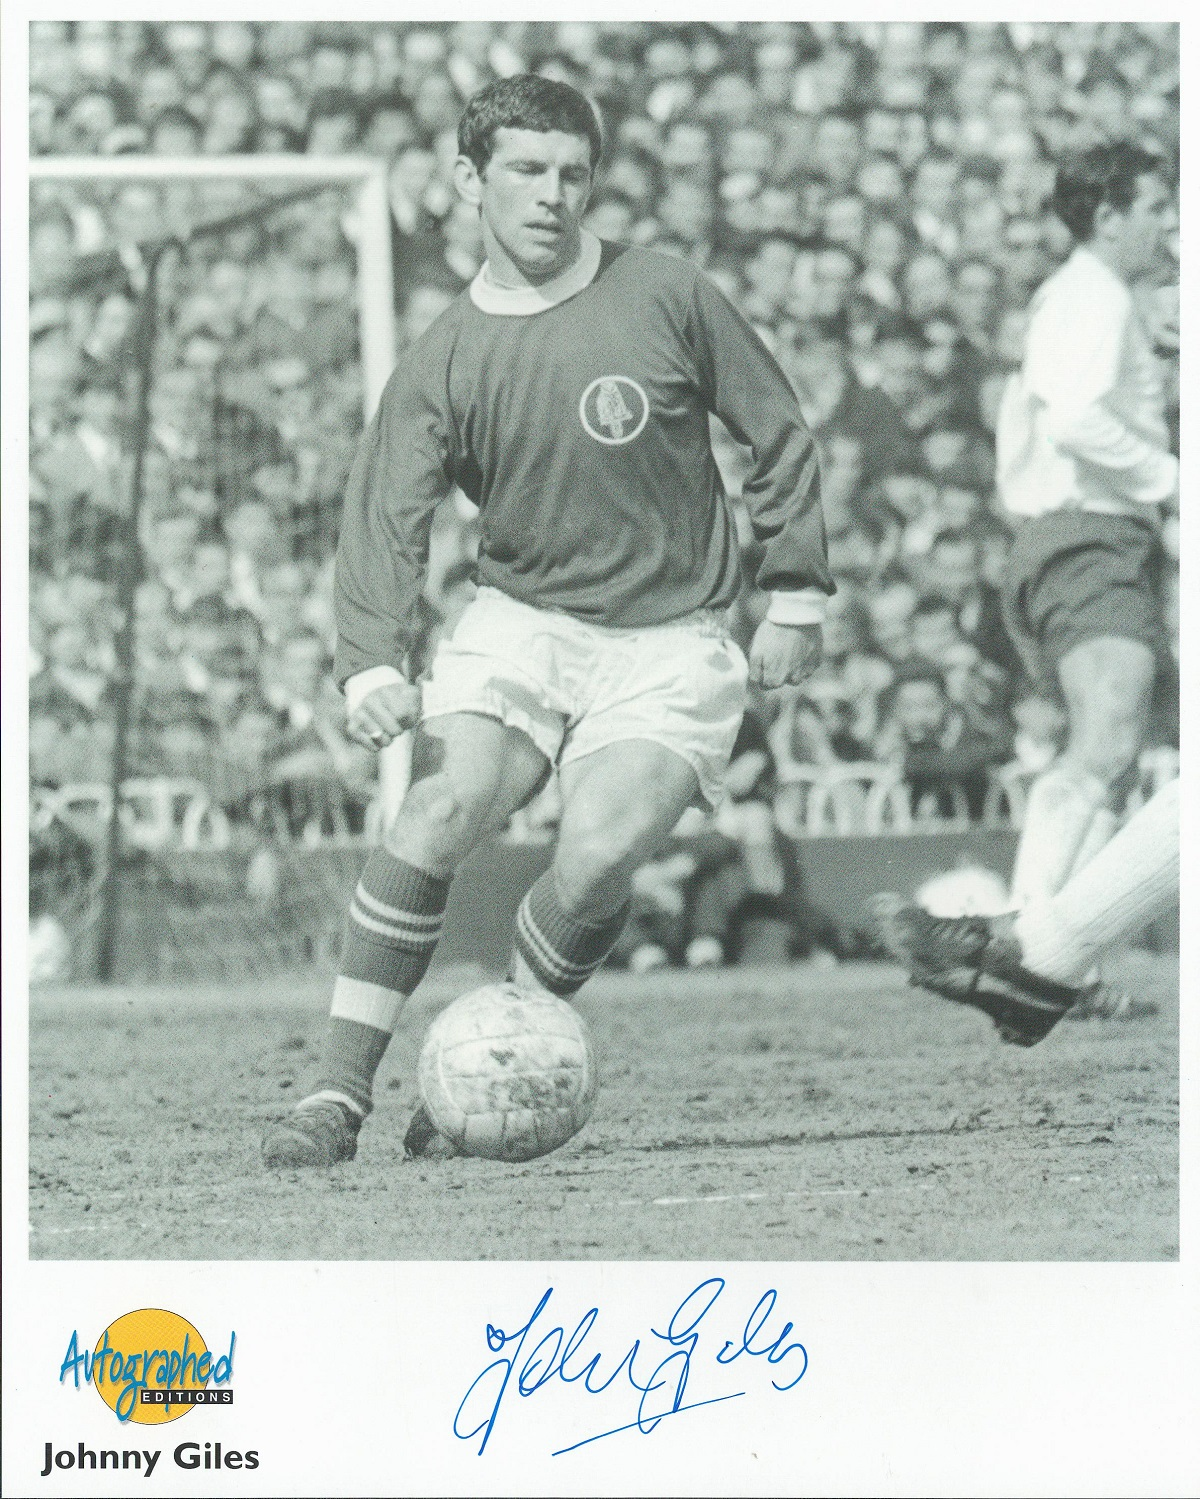 Football. Johnny Giles Signed 10x8 Autographed Editions page. Bio description on the rear. Photo